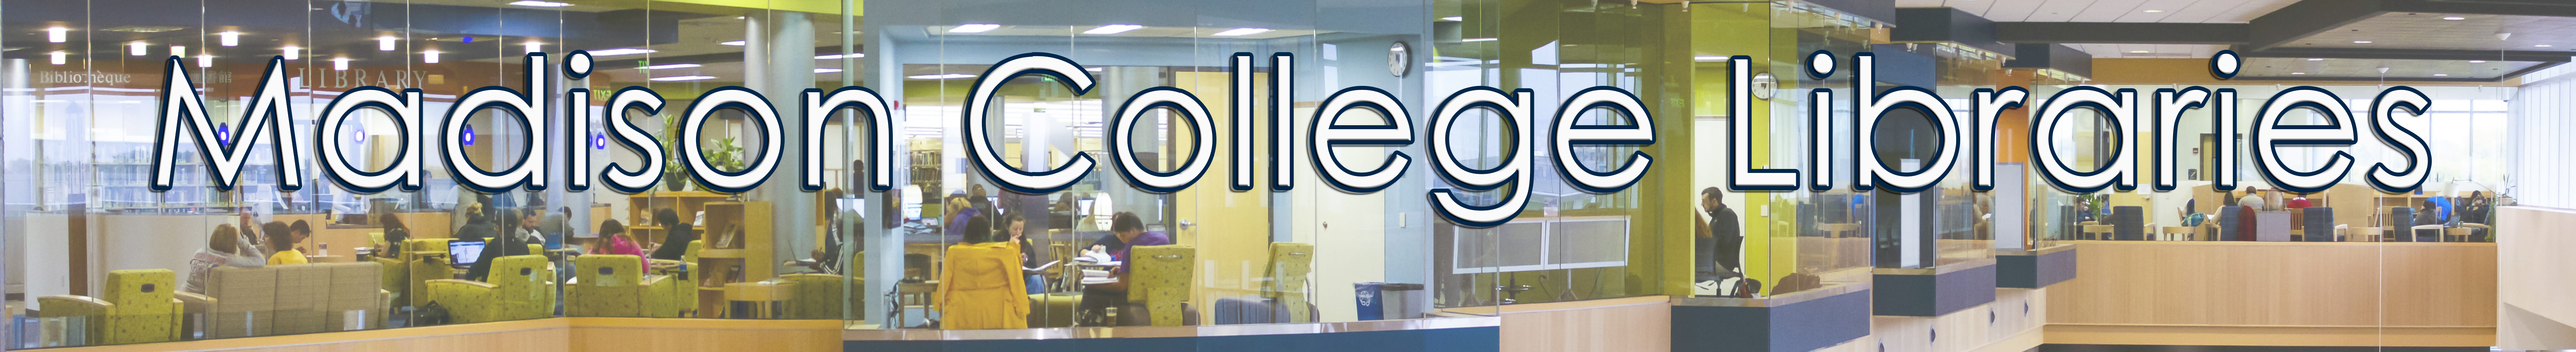 Madison College Libraries